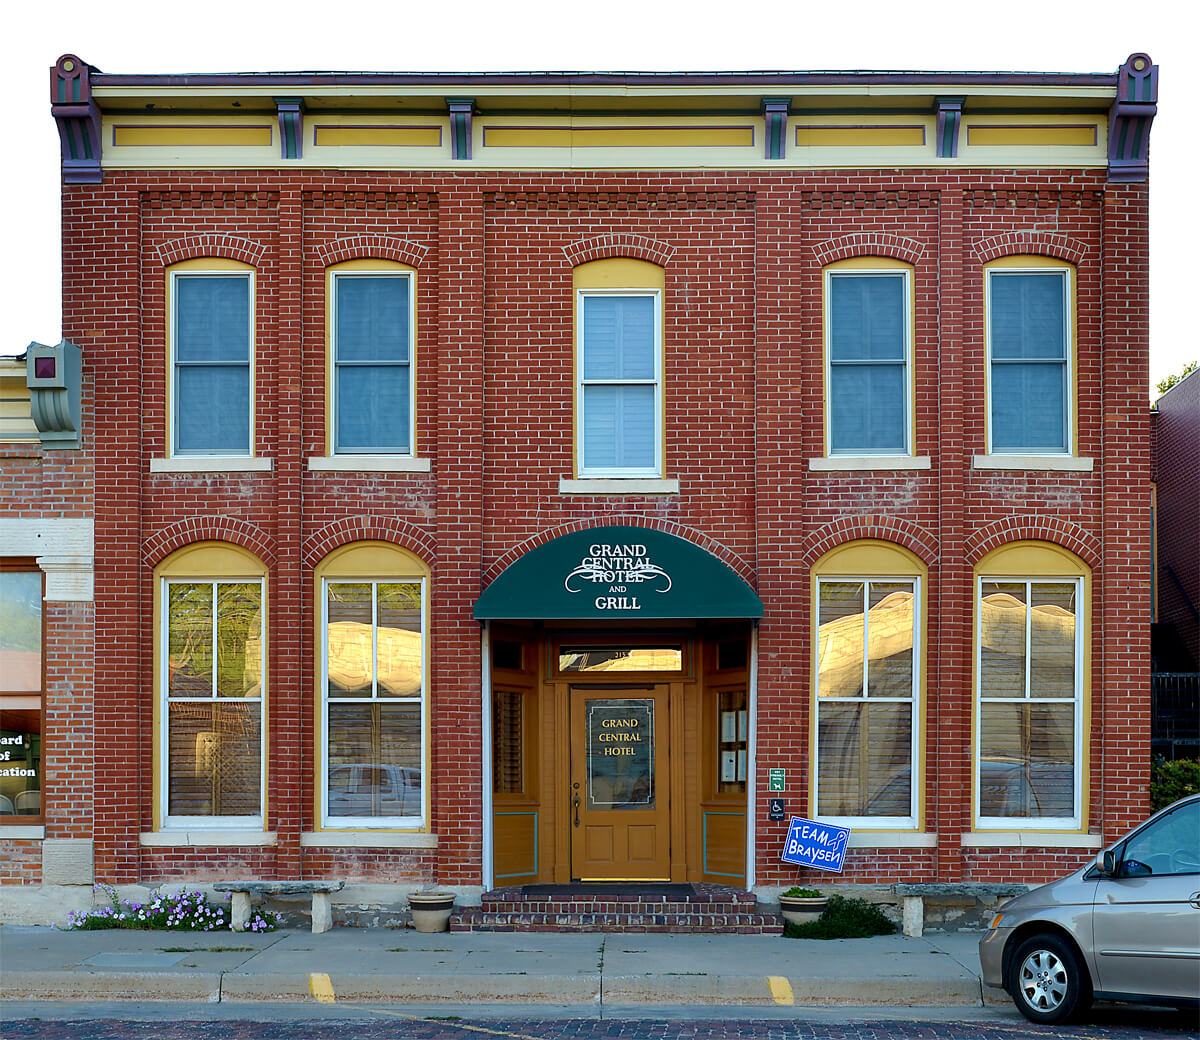 The Grand Central Hotel and Grill in Cottonwood Falls